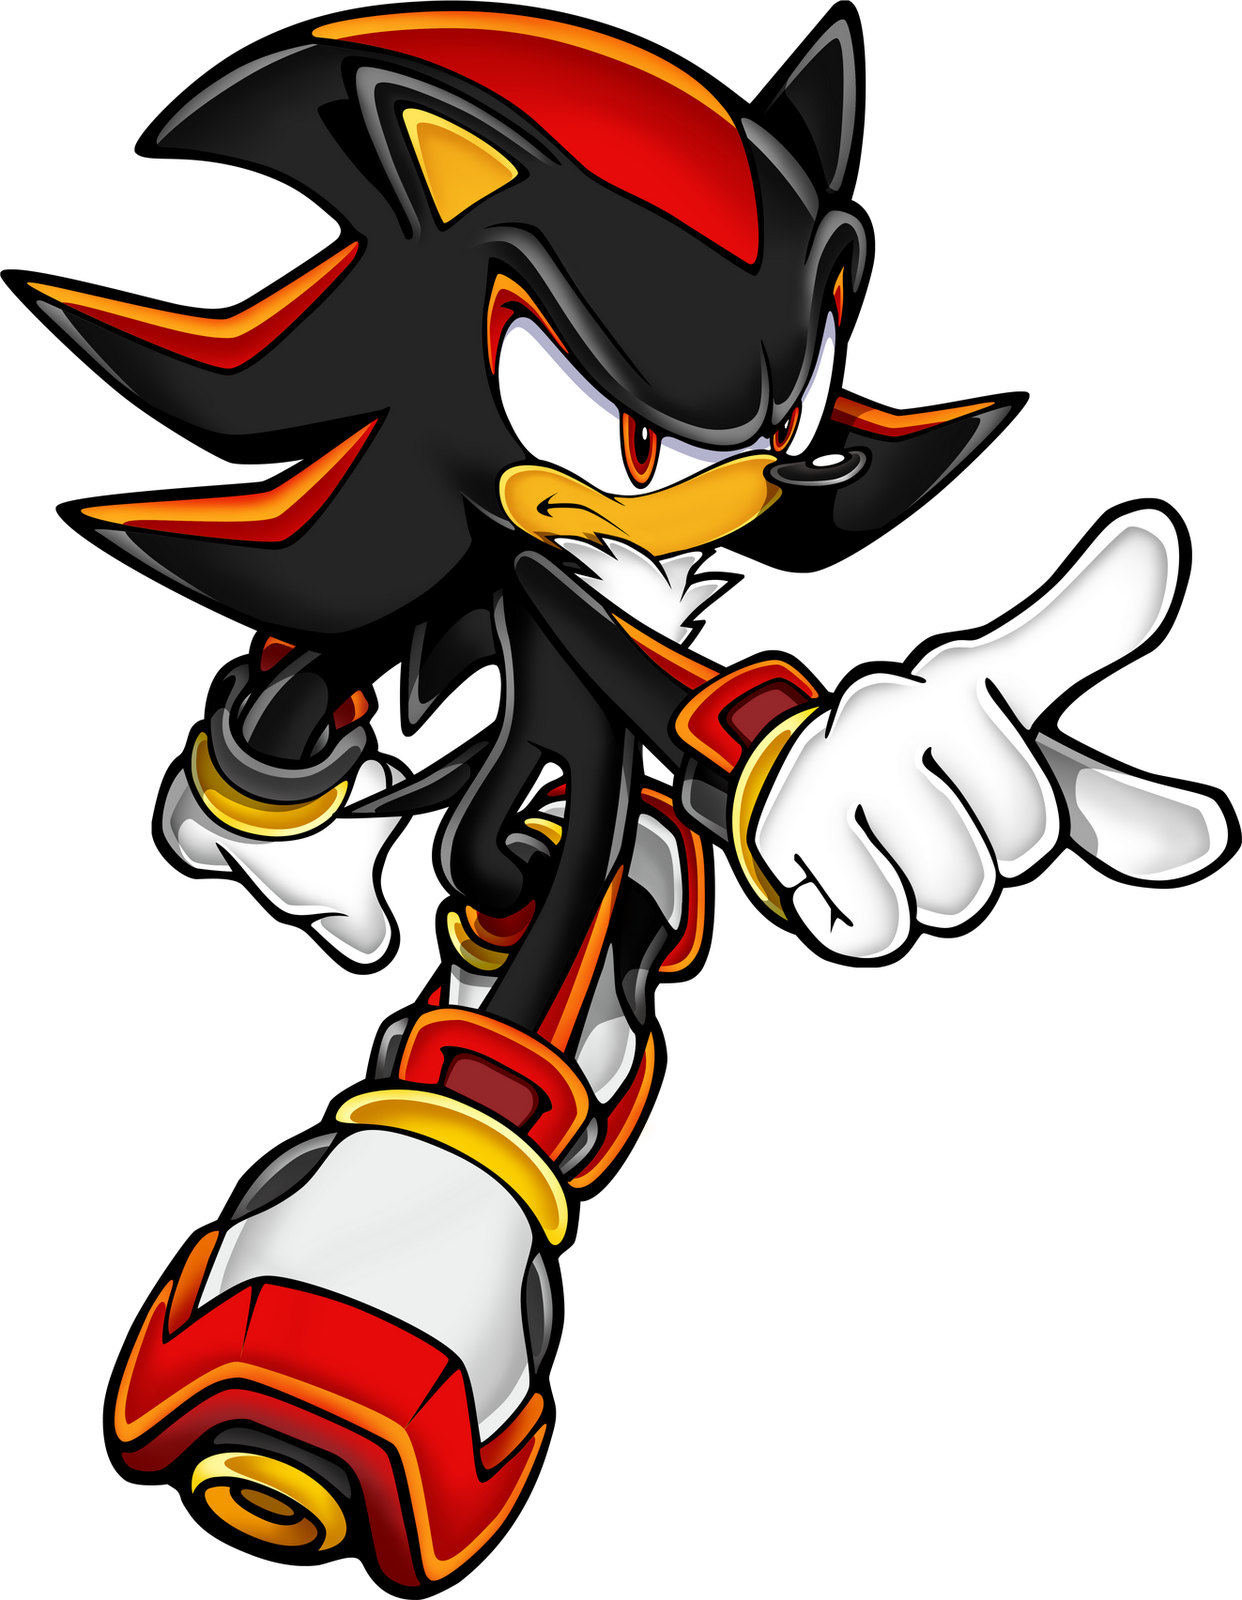 Sonic The Hedgehog Png 9 PNG Image - Sonic The Hedgehog PNG